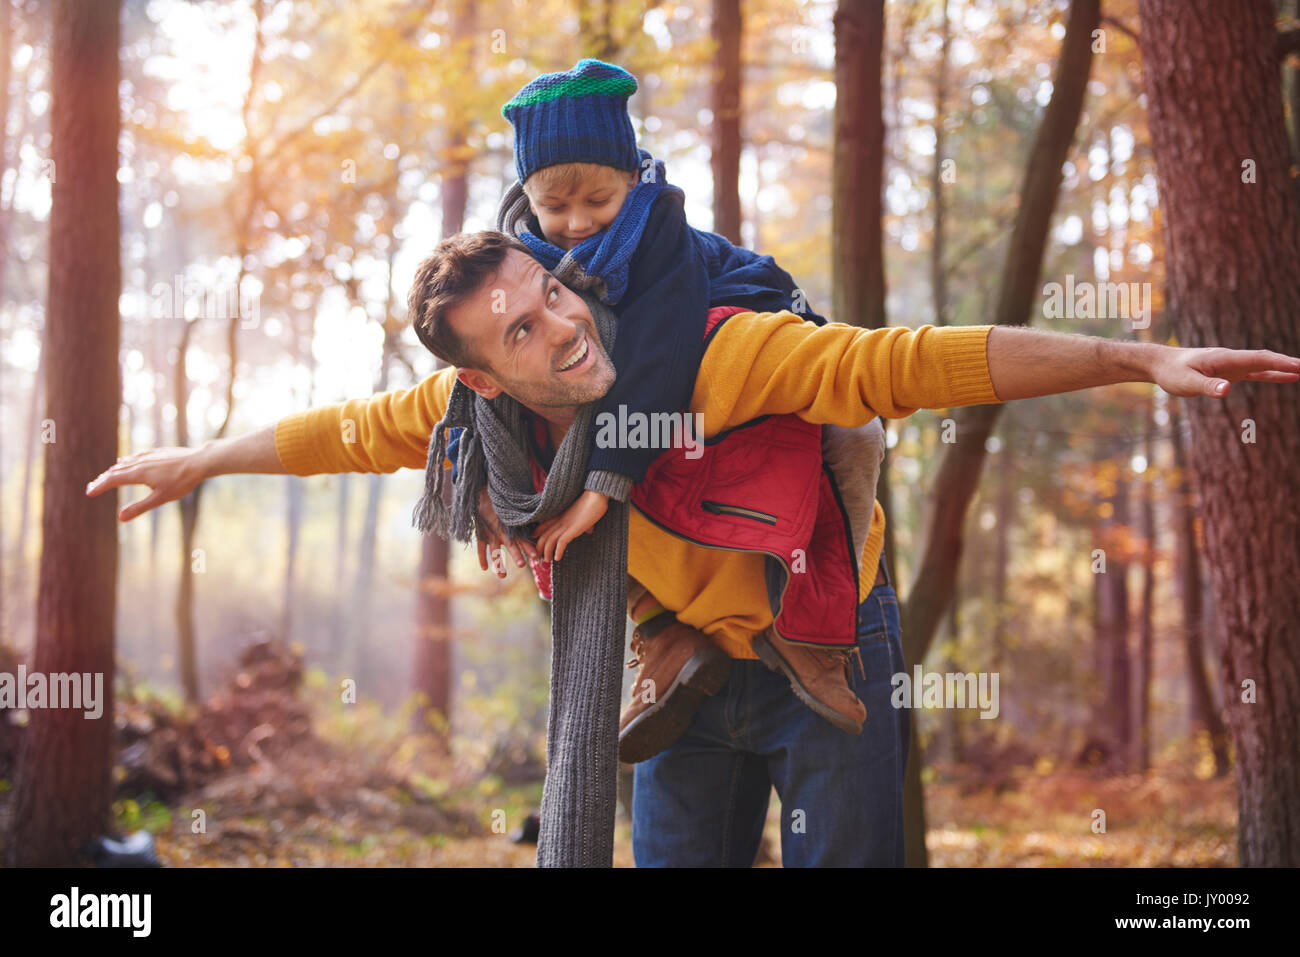 He is my pride and joy - Stock Image